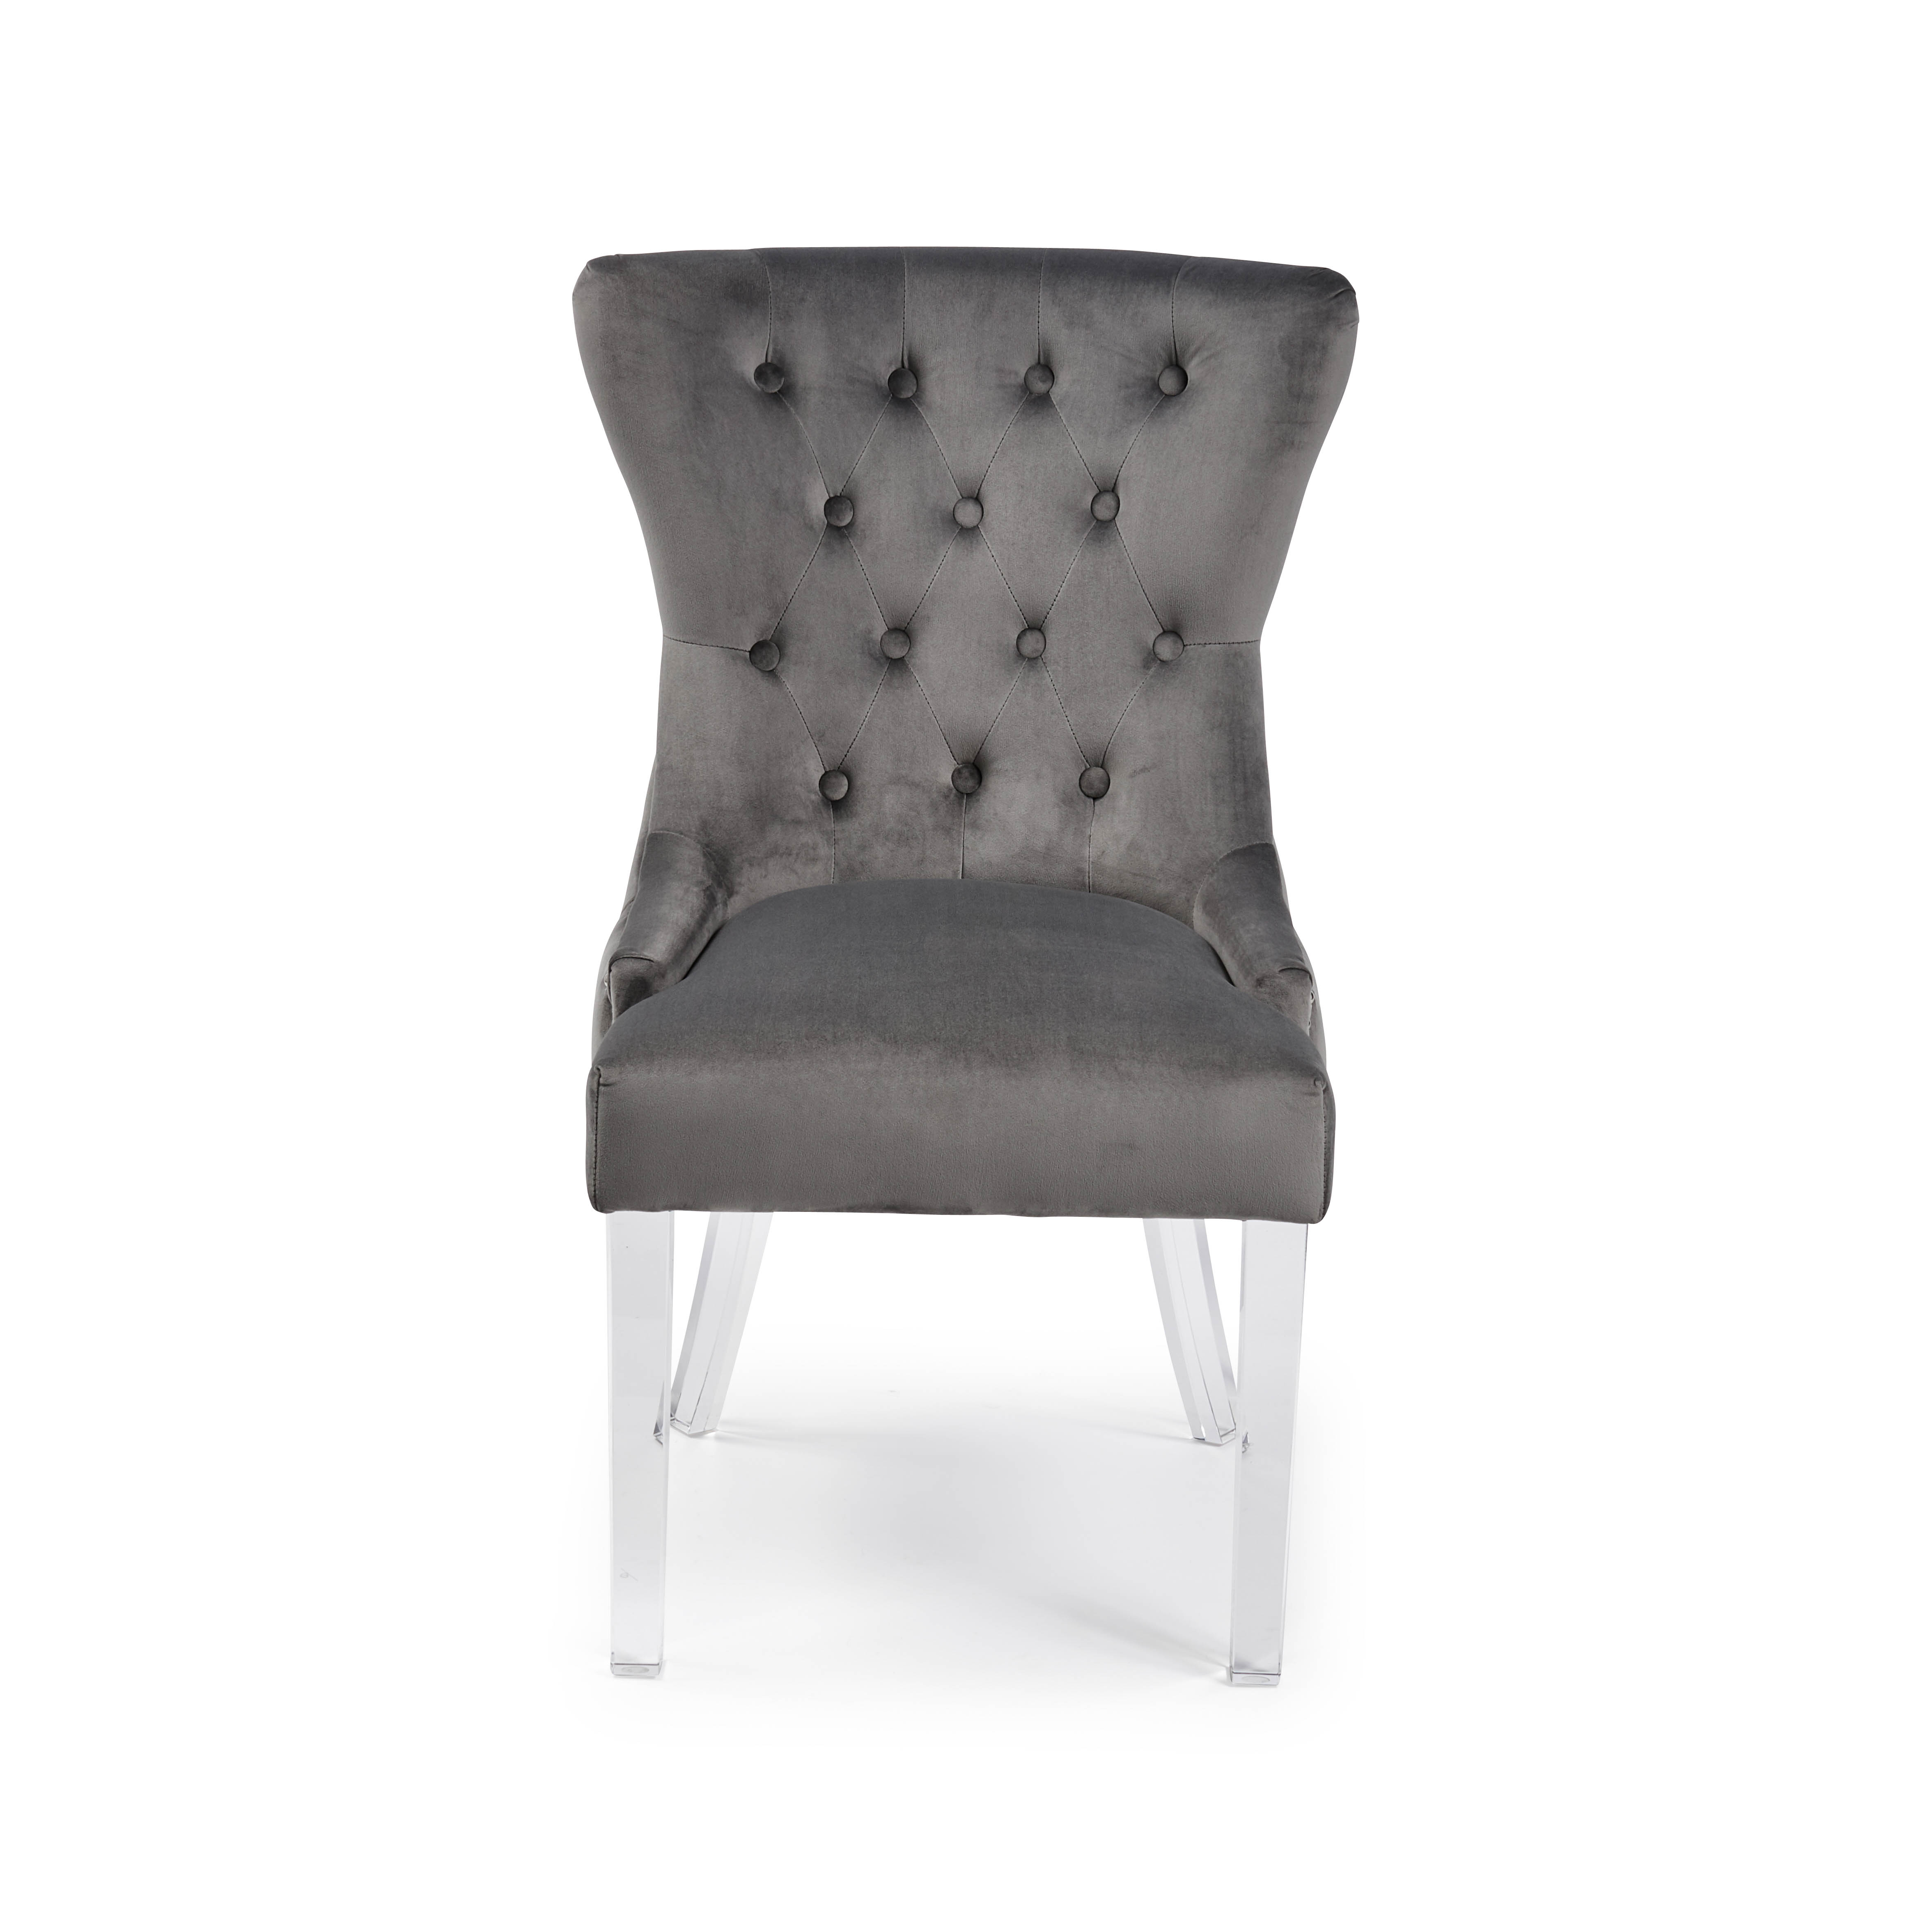 Knightsbridge Buttoned Grey Brushed Velvet Dining Chair with Polished Acrylic Legs